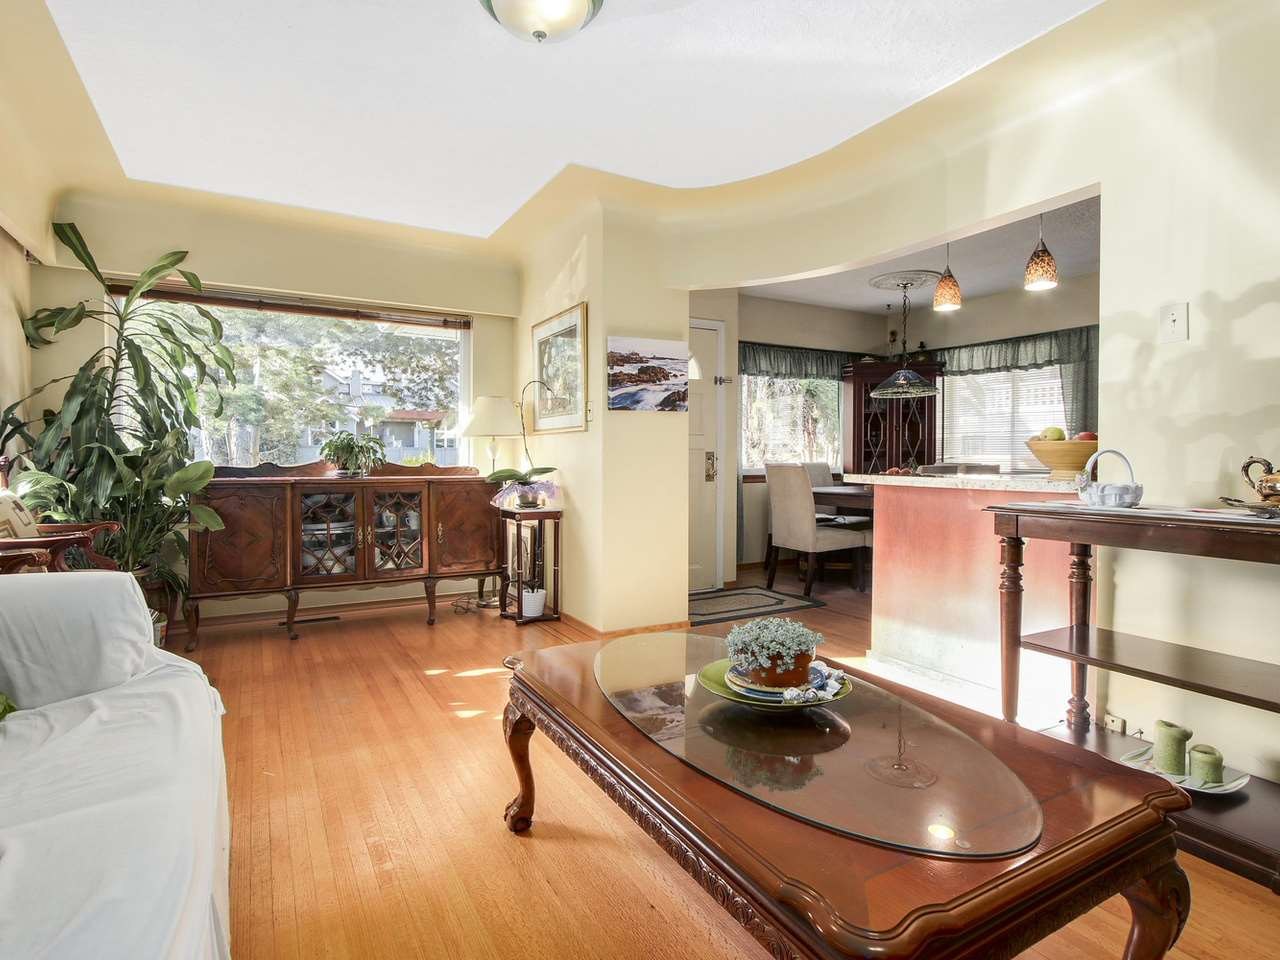 Photo 7: Photos: 1520 MACGOWAN Avenue in North Vancouver: Norgate House for sale : MLS® # R2137032